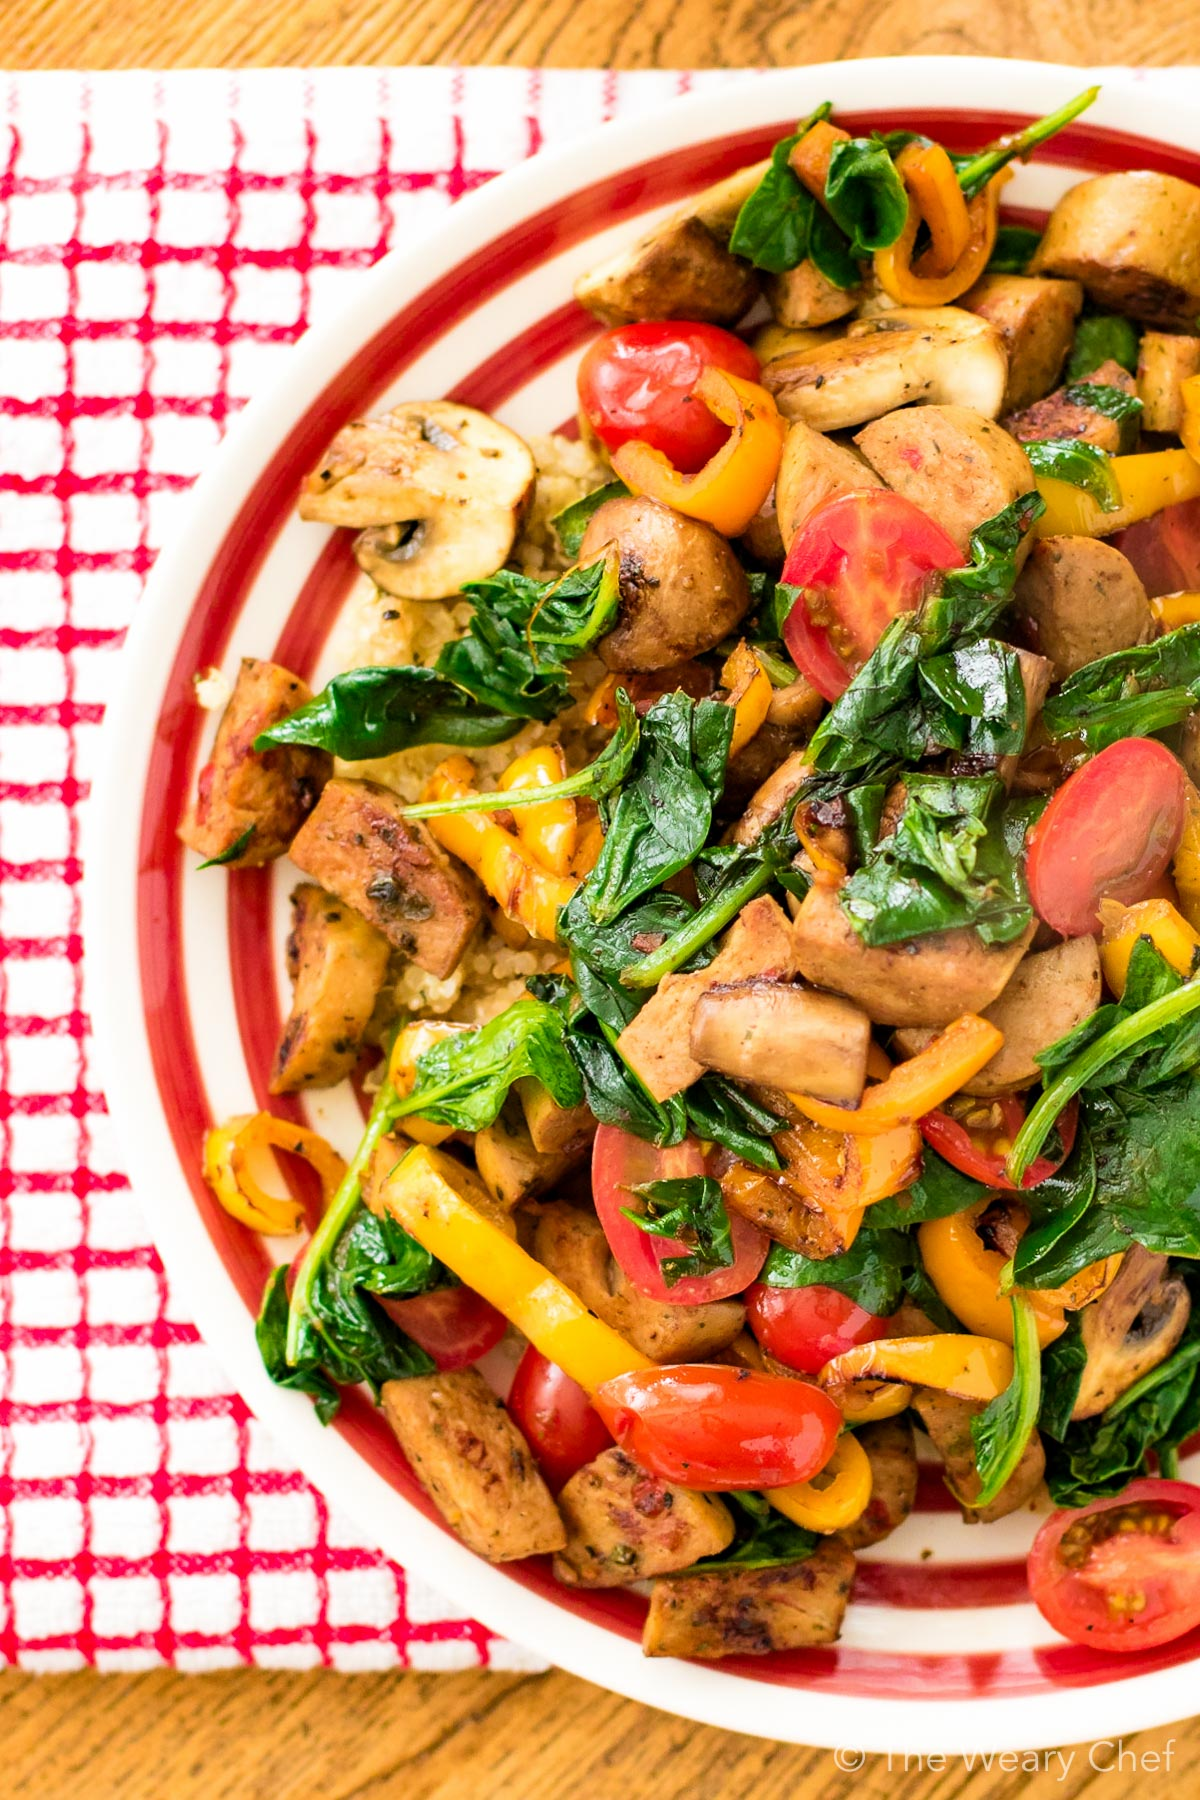 Want a versatile, easy dinner recipe? Try this sausage stir fry!